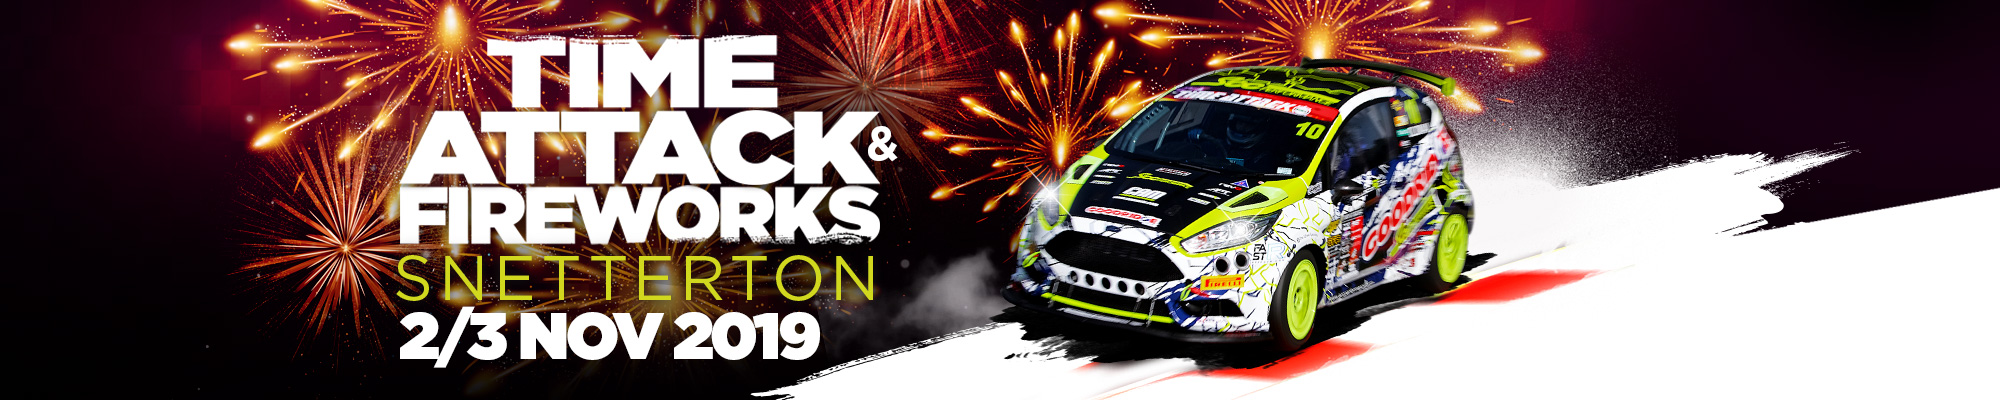 Time Attack and Fireworks Display